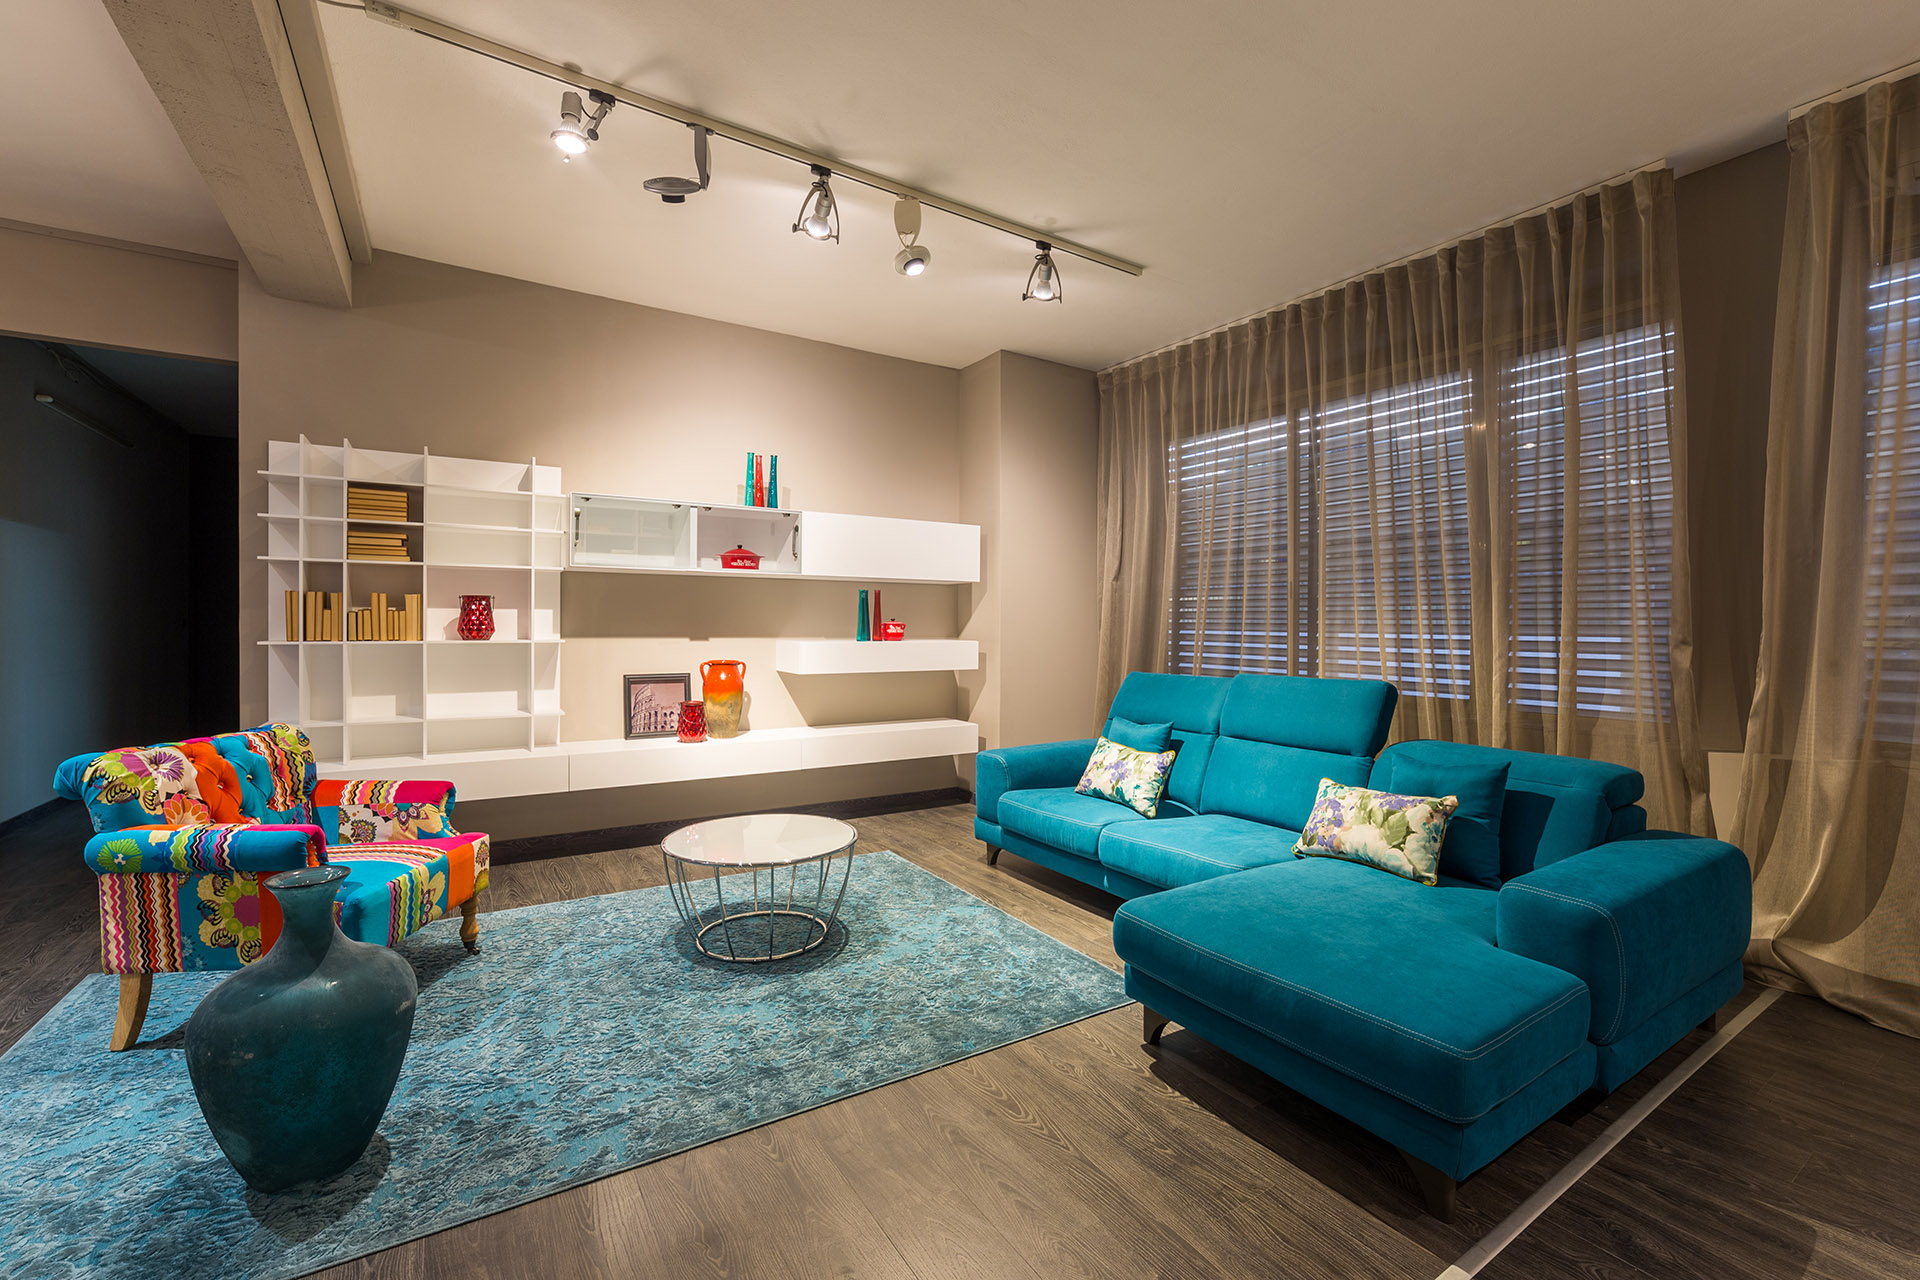 Mobili Complementi D Arredo. Simple I With Mobili Complementi D ...